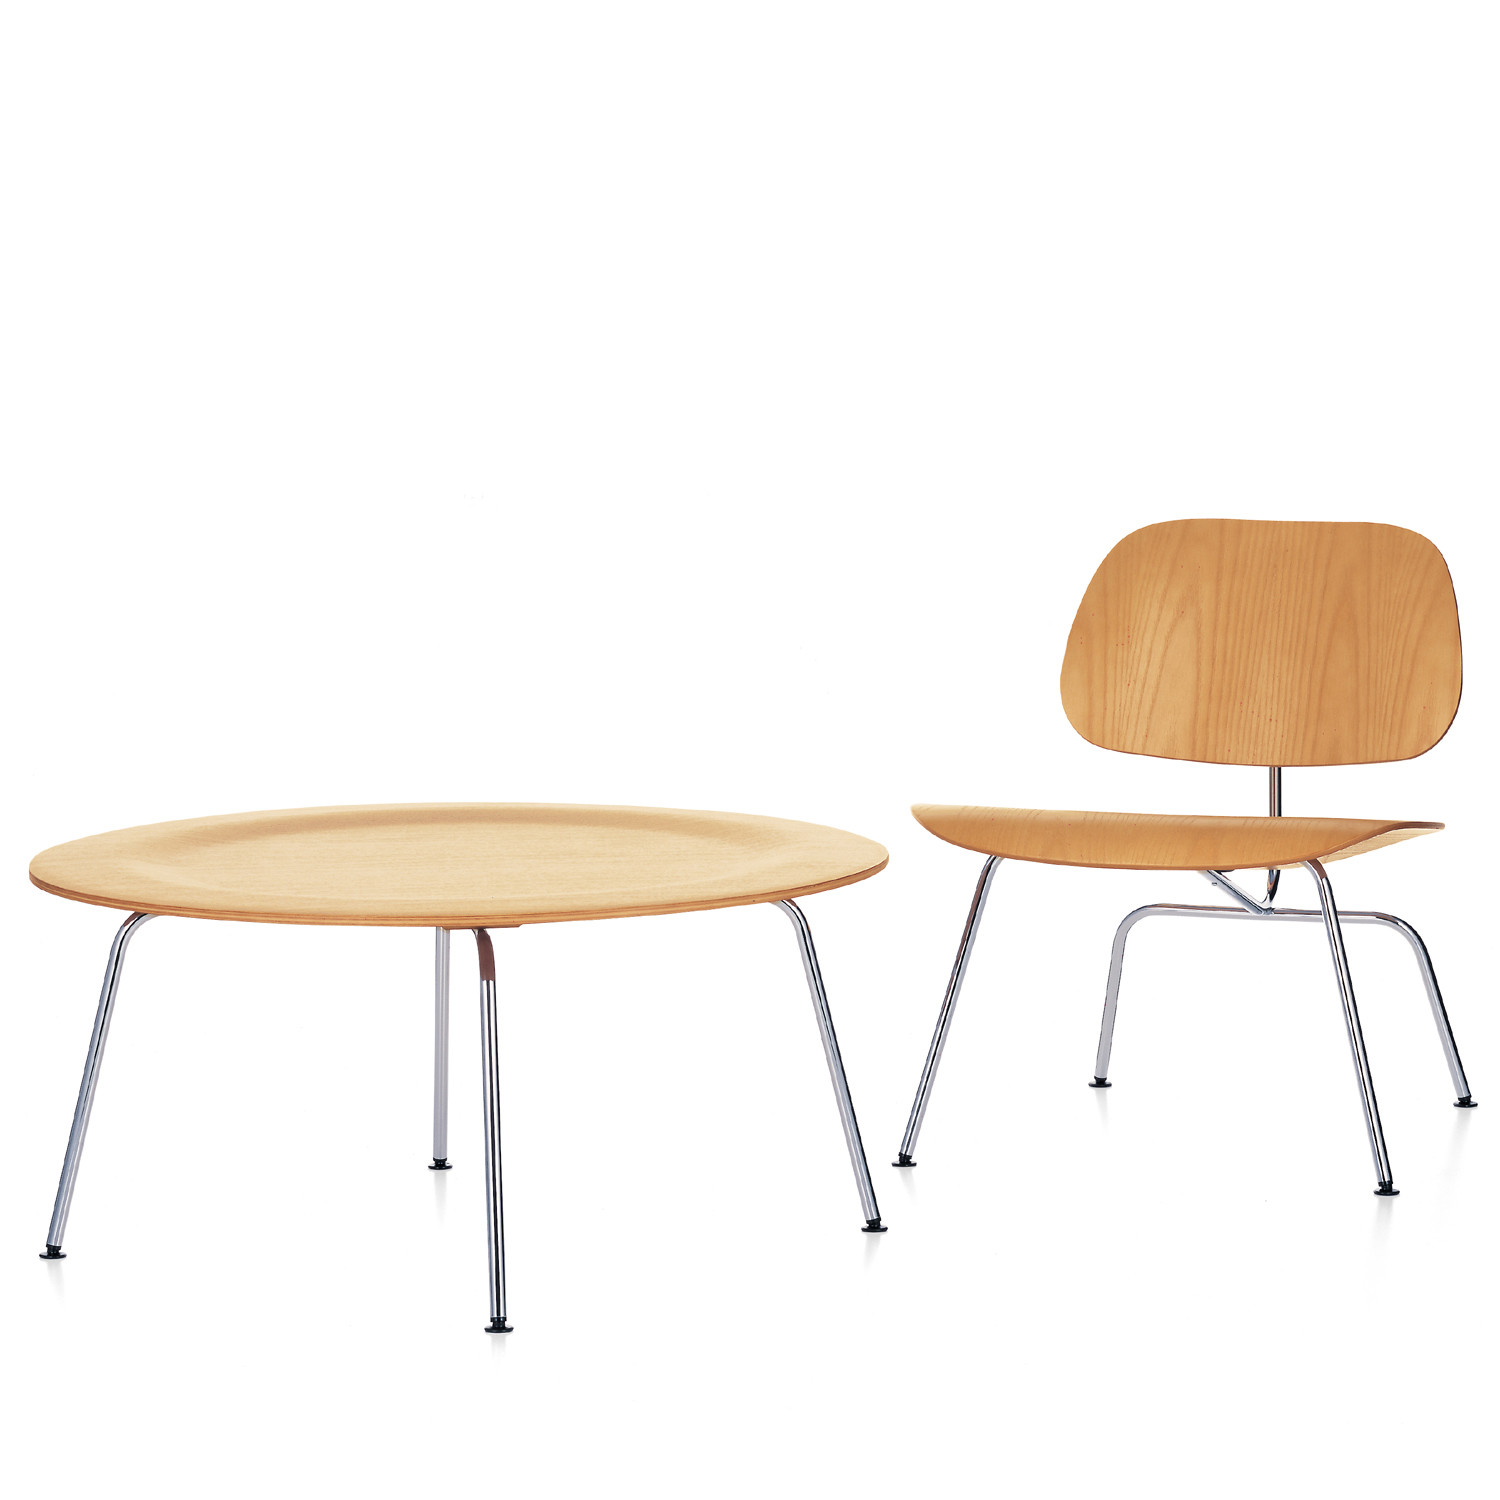 LCM Plywood Group Chair & Table